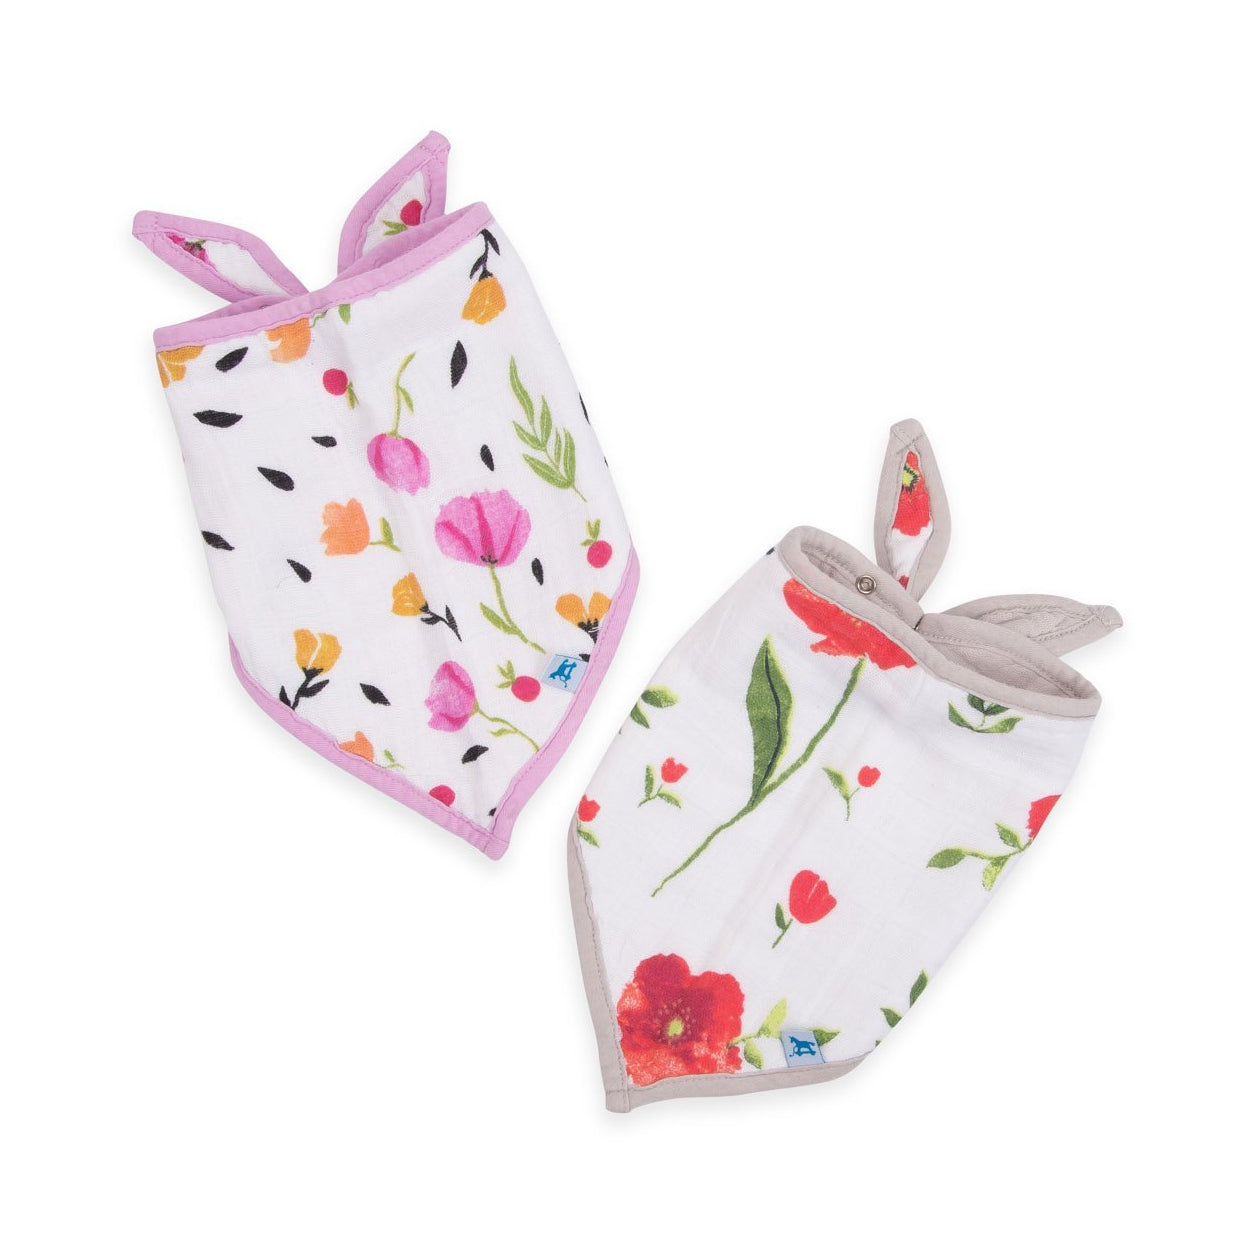 Baby Bandana Bibs by Little Unicorn at Bonjour Baby Baskets